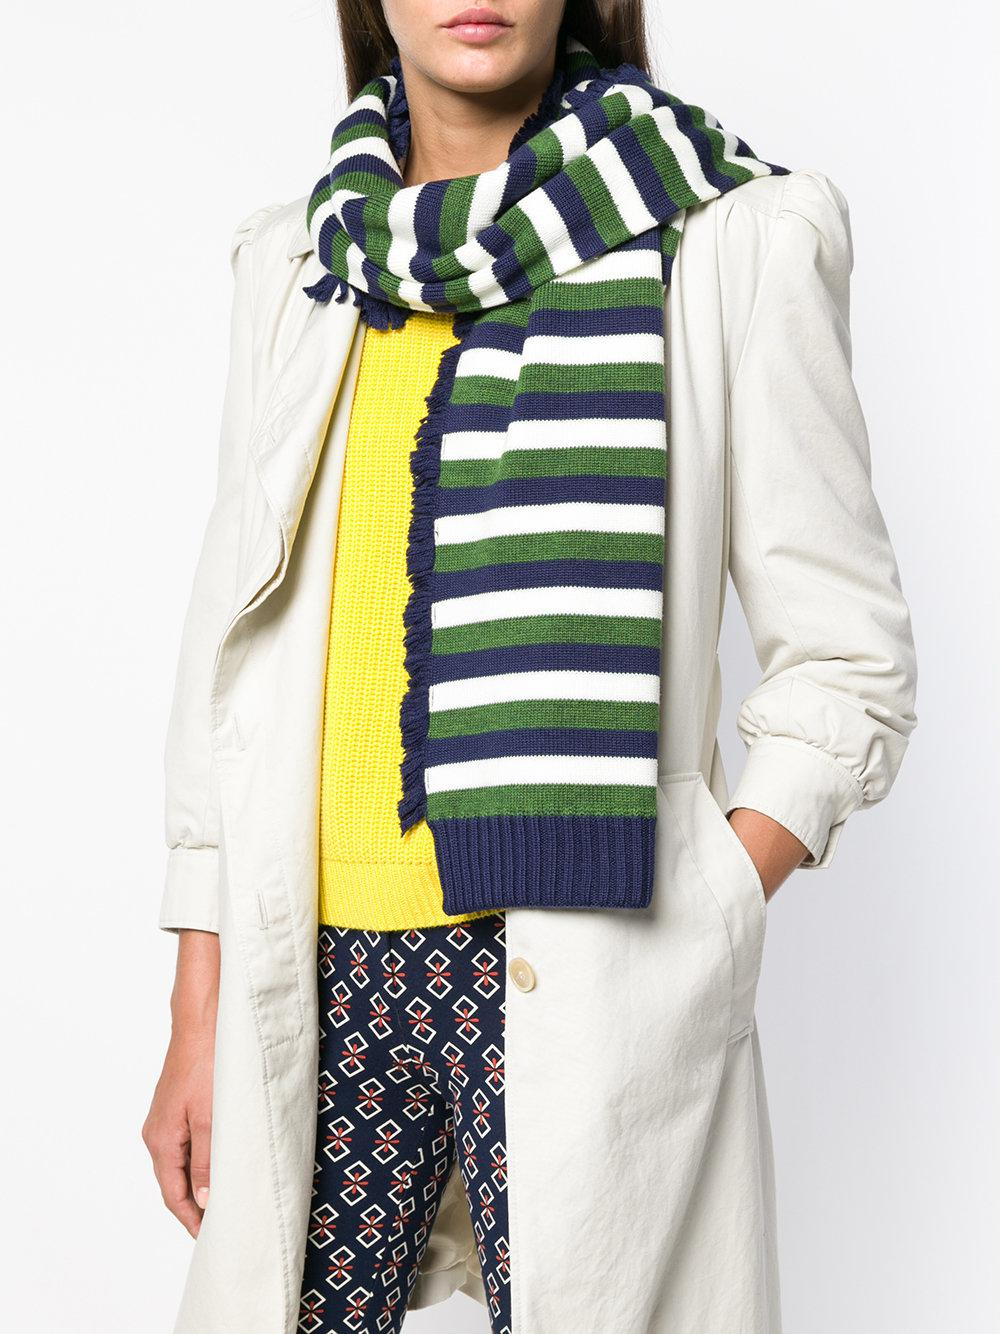 33602b4a89 Lyst - Sonia Rykiel Striped Scarf in Green